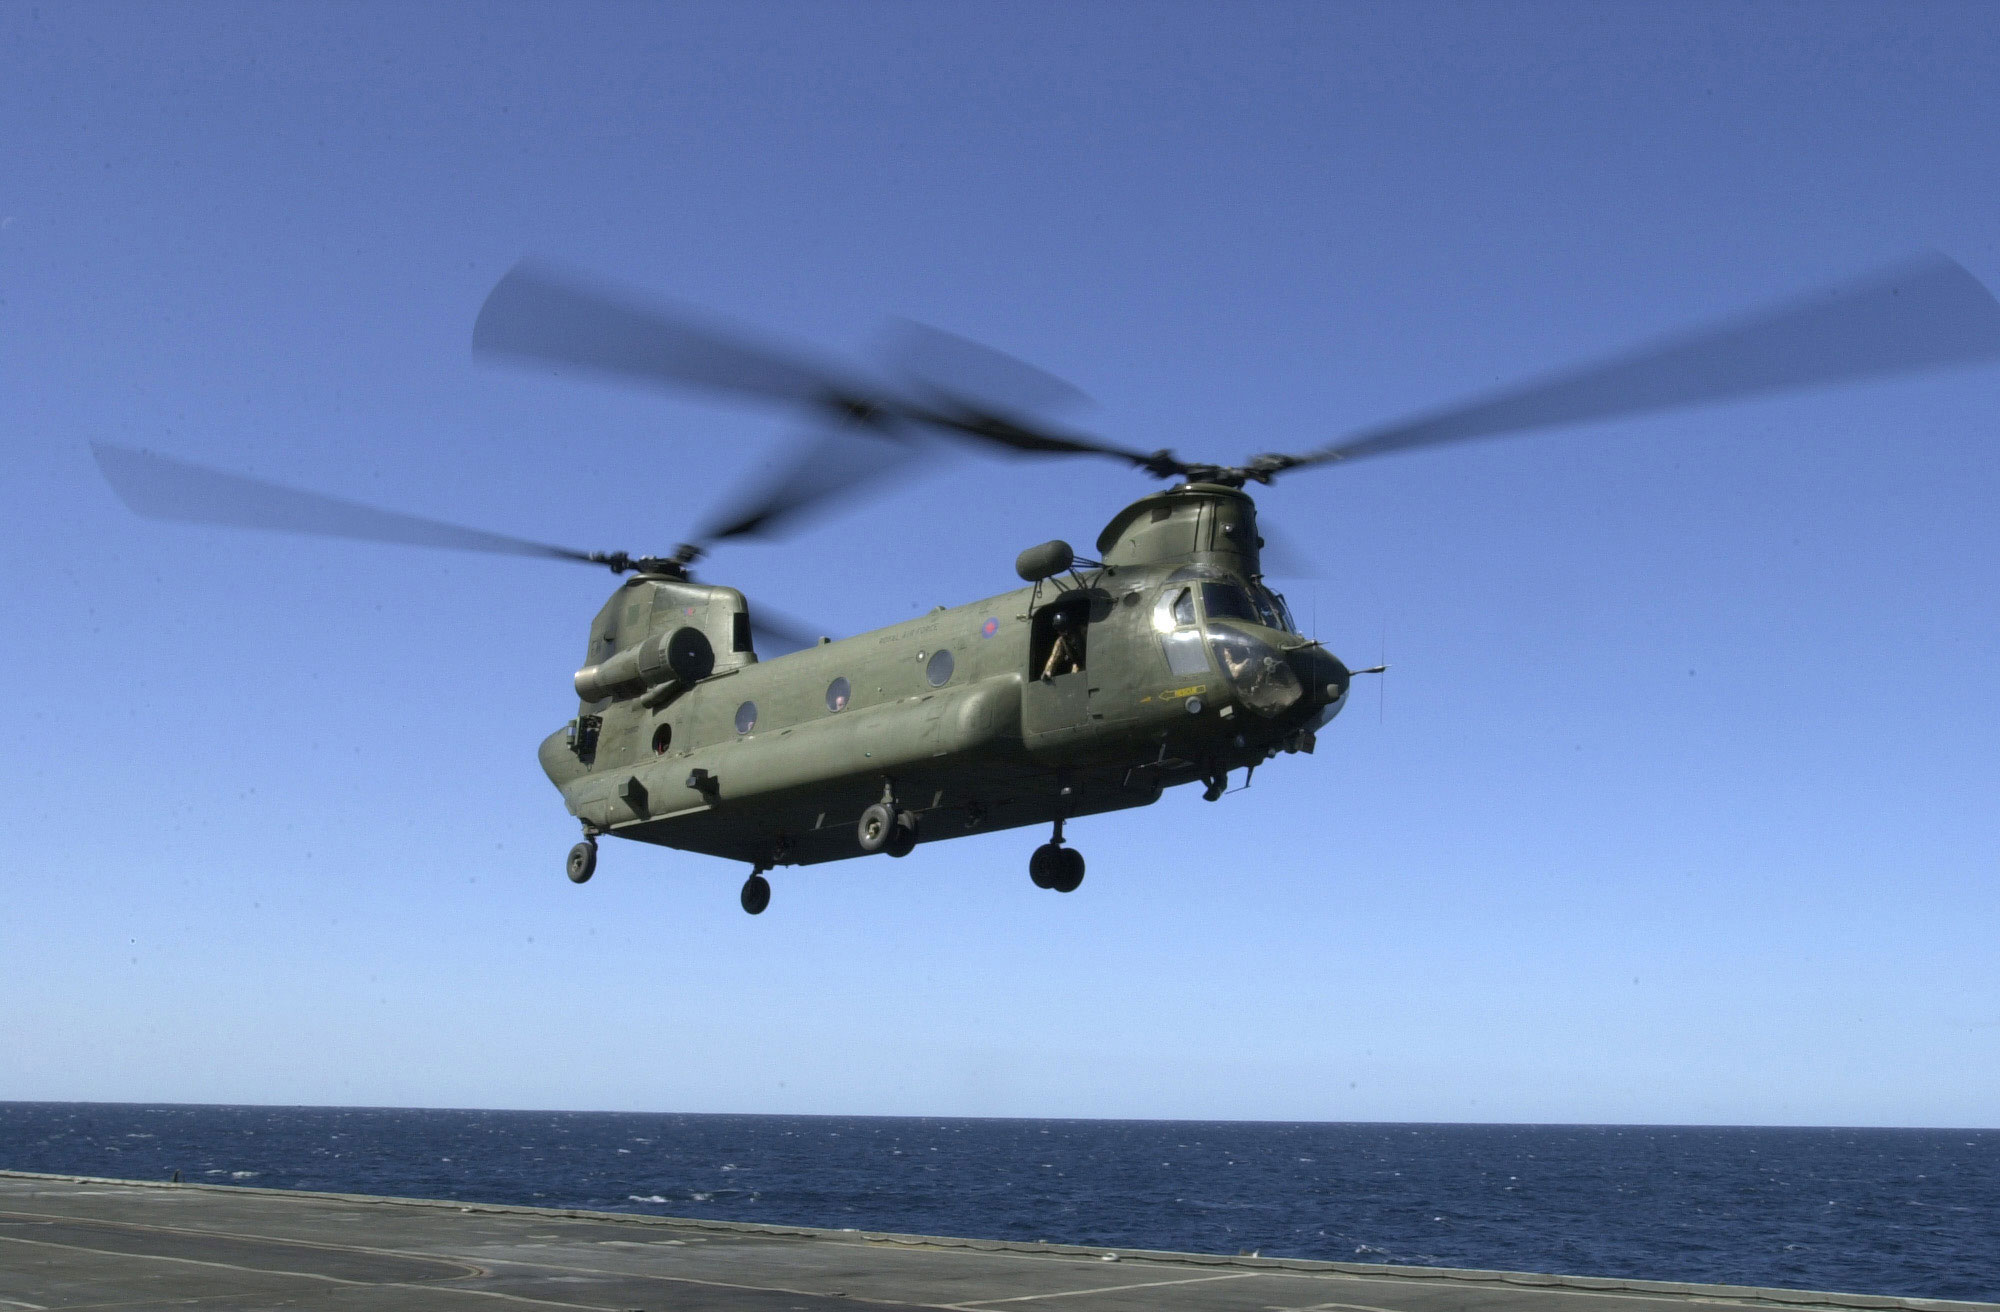 Chinook Helicopter Gallery http://www.eliteukforces.info/gallery/helicopters/chinook-hms-illustrious.php